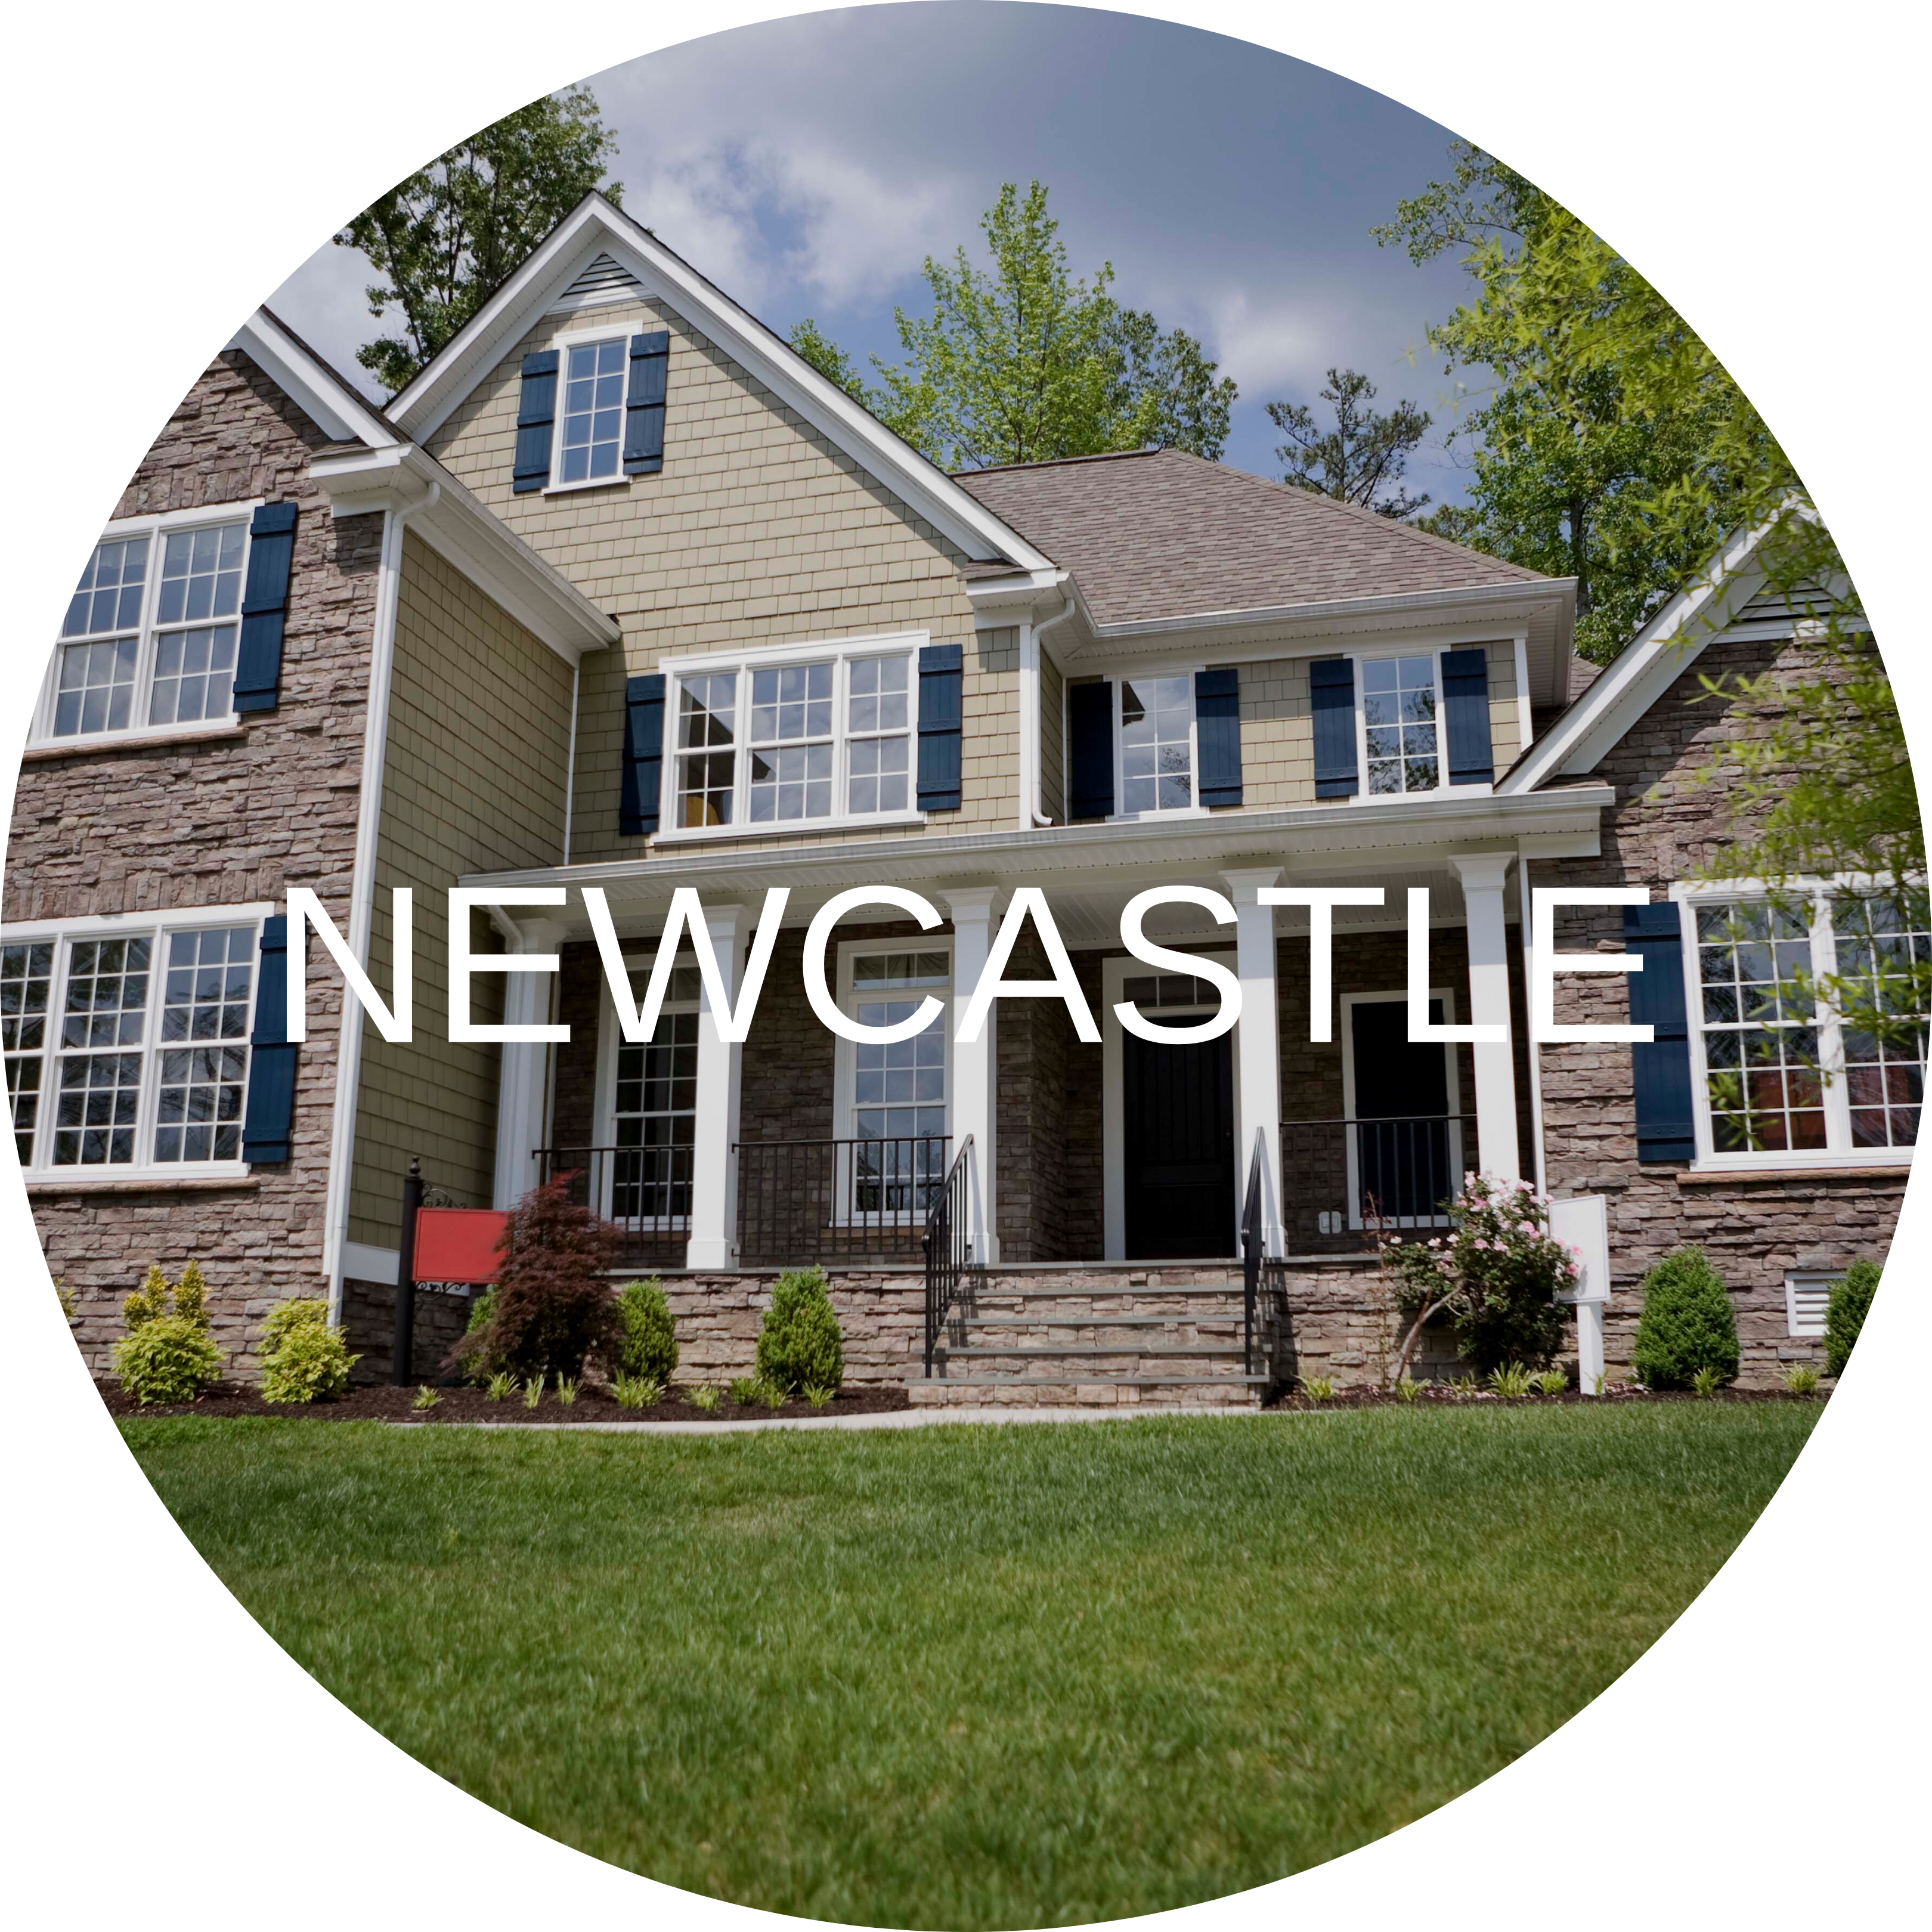 Newcastle Ontario RE/MAX real estate listings for sale